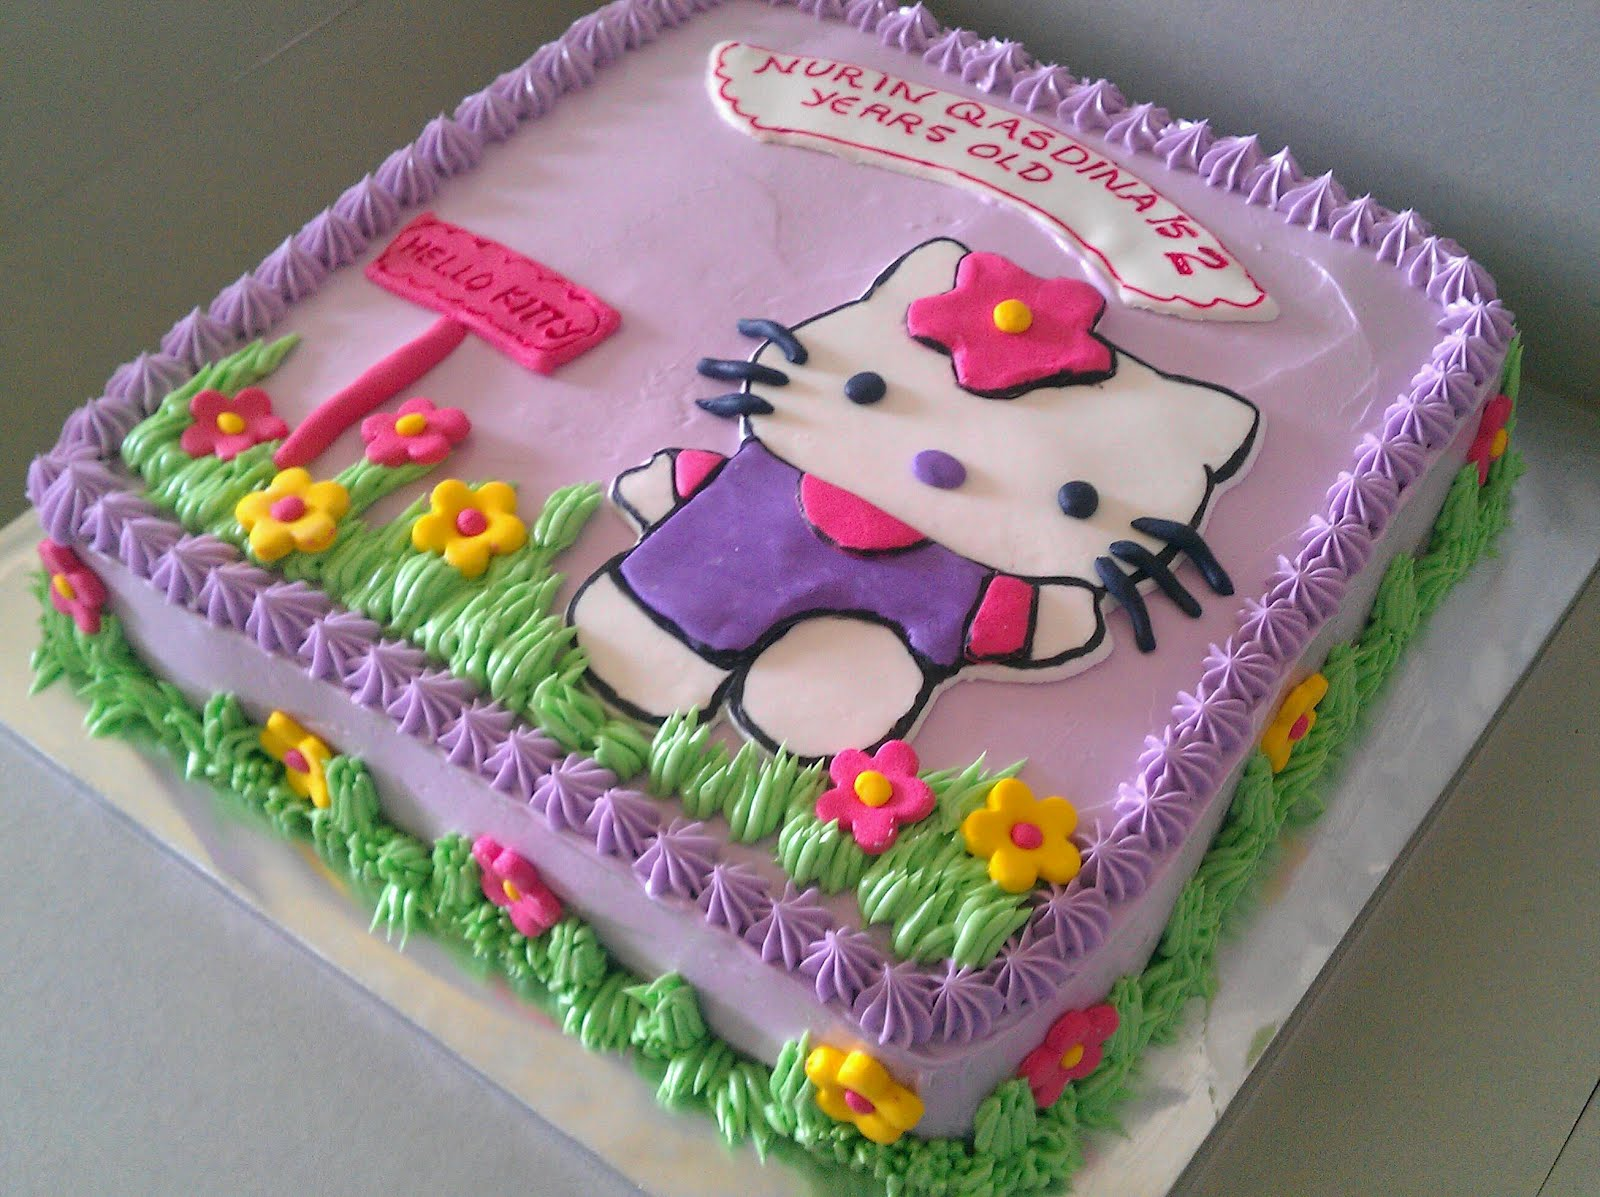 Zairie Homemade Delights Hello Kitty Birthday Cake